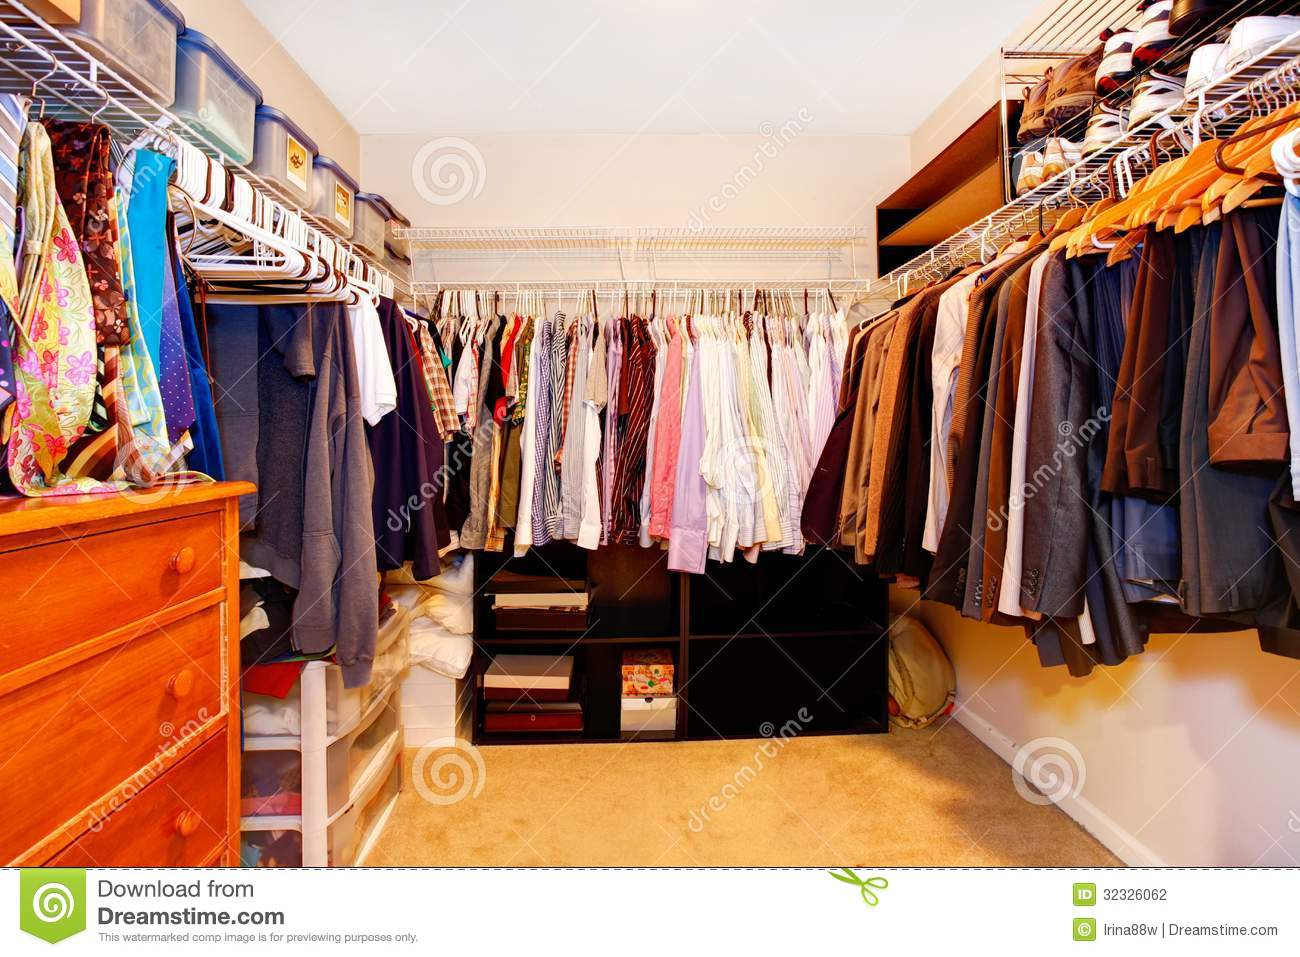 Bachelor Closet Interior With Lots Of Business Clothes Stock Photo Image 32326062